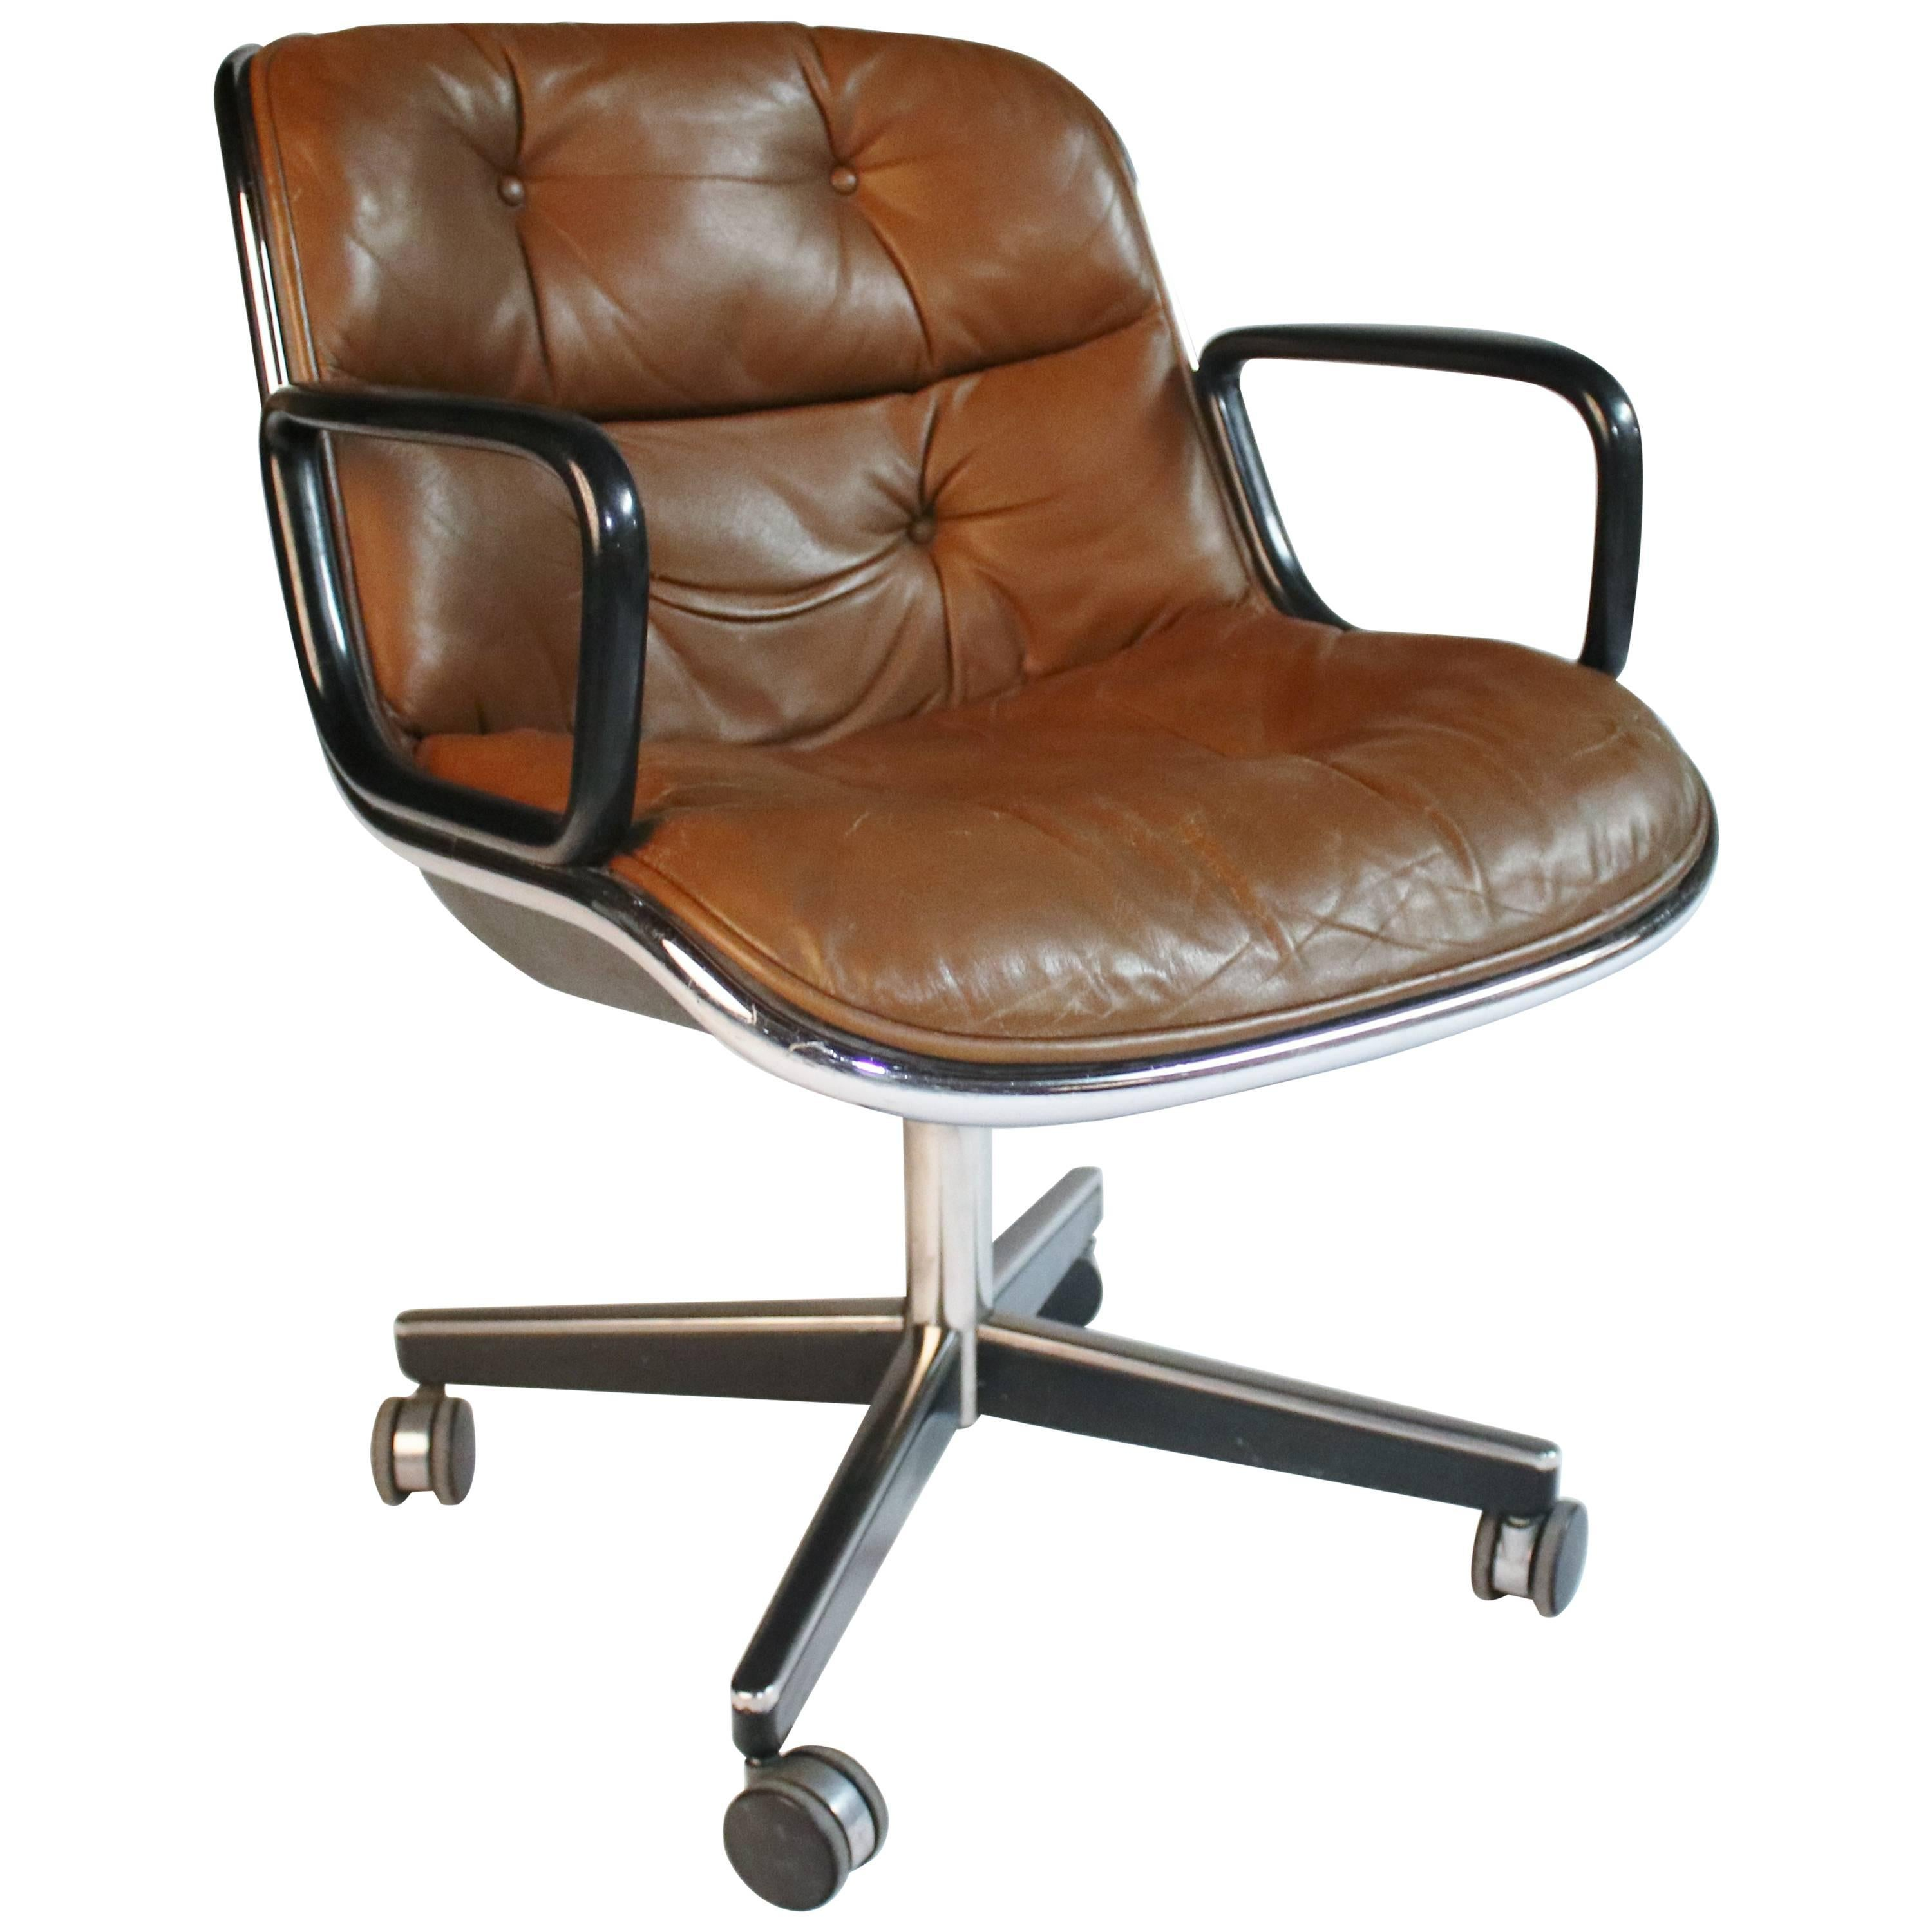 1970s Charles Pollack For Knoll Executive Desk Chair For Sale